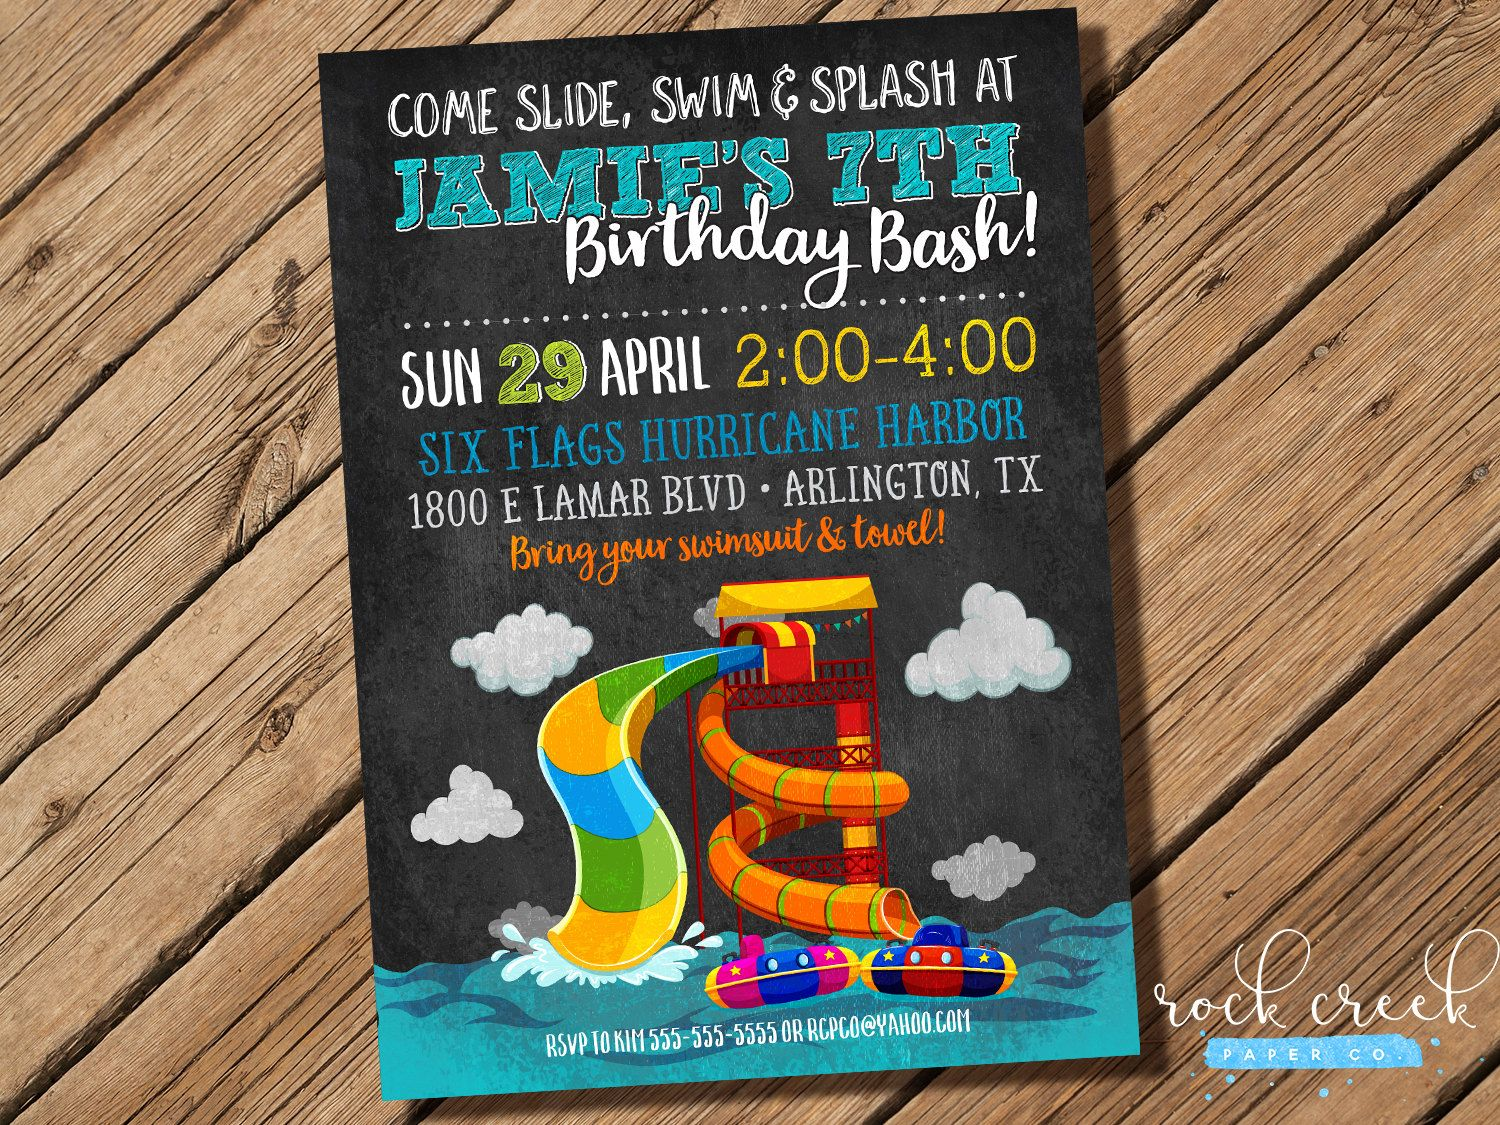 Waterpark Party Invitation Water Slide Party Wave Pool Splash